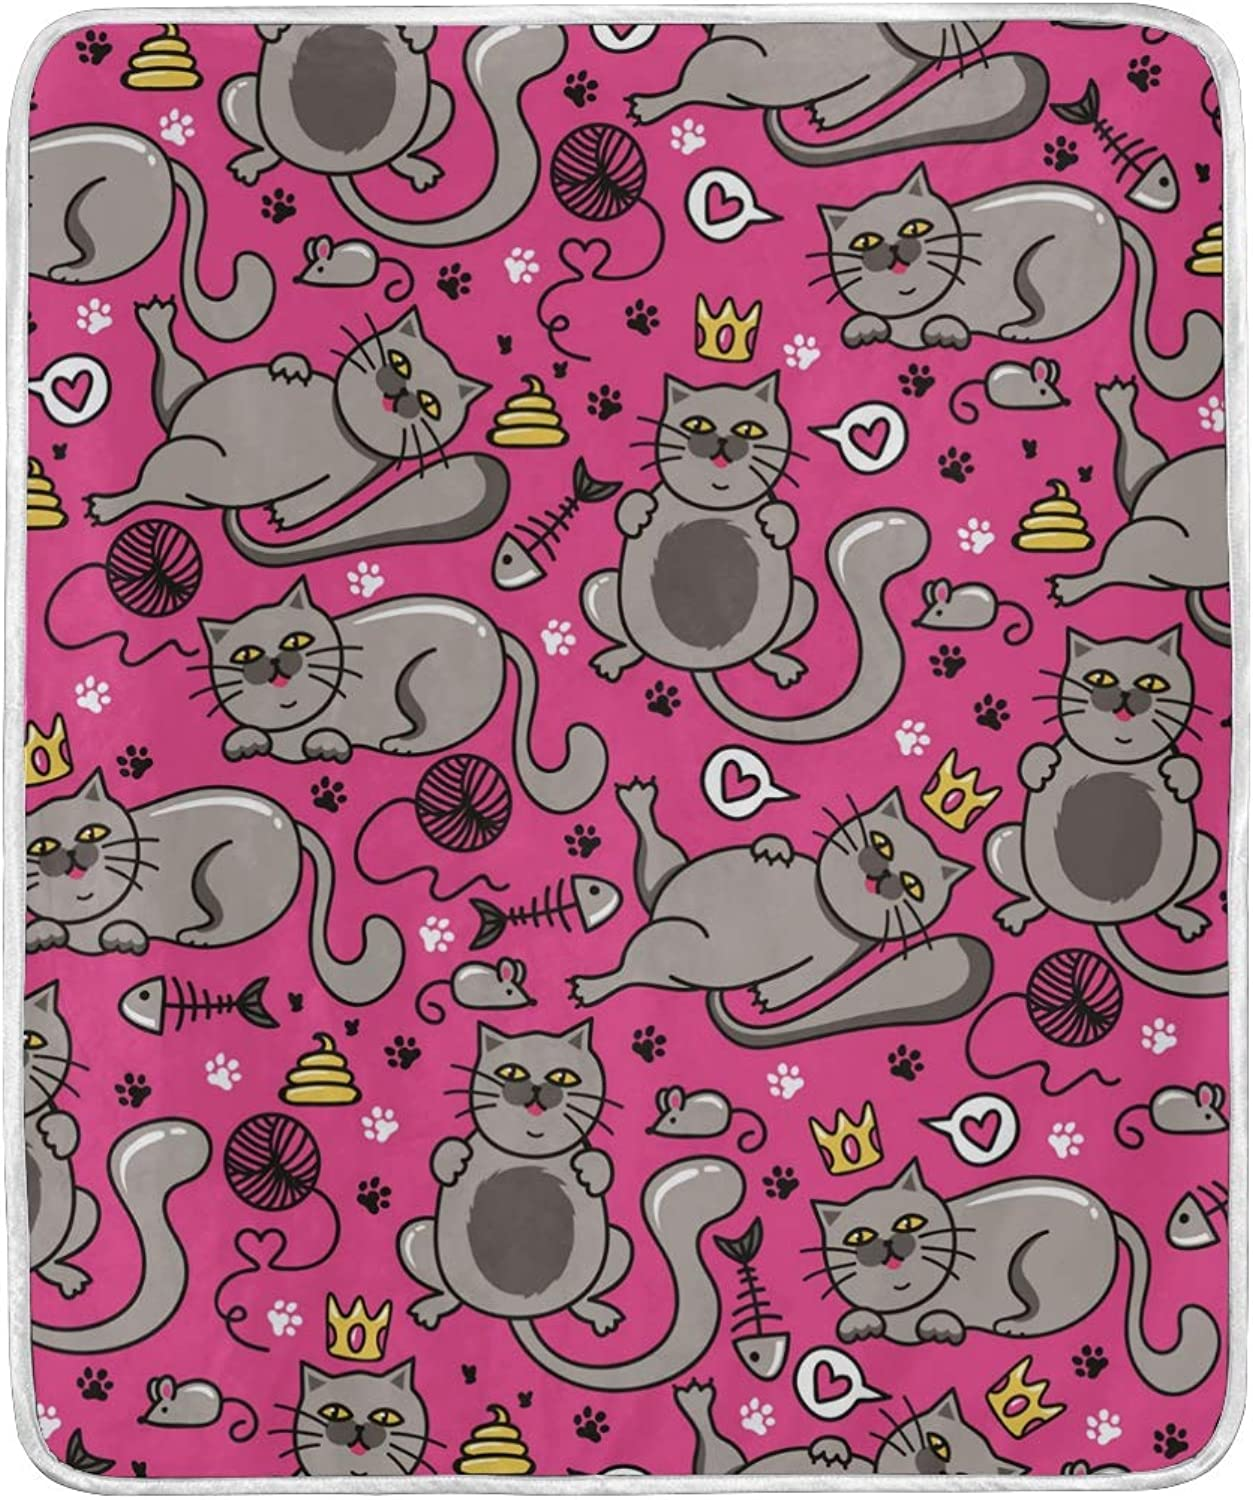 WIHVE Home Decor Blanket Cat Fish Bone Mouse Ball Throw Lightweight Soft Warm Blankets for Bed Couch Sofa 50 X 60 Inches